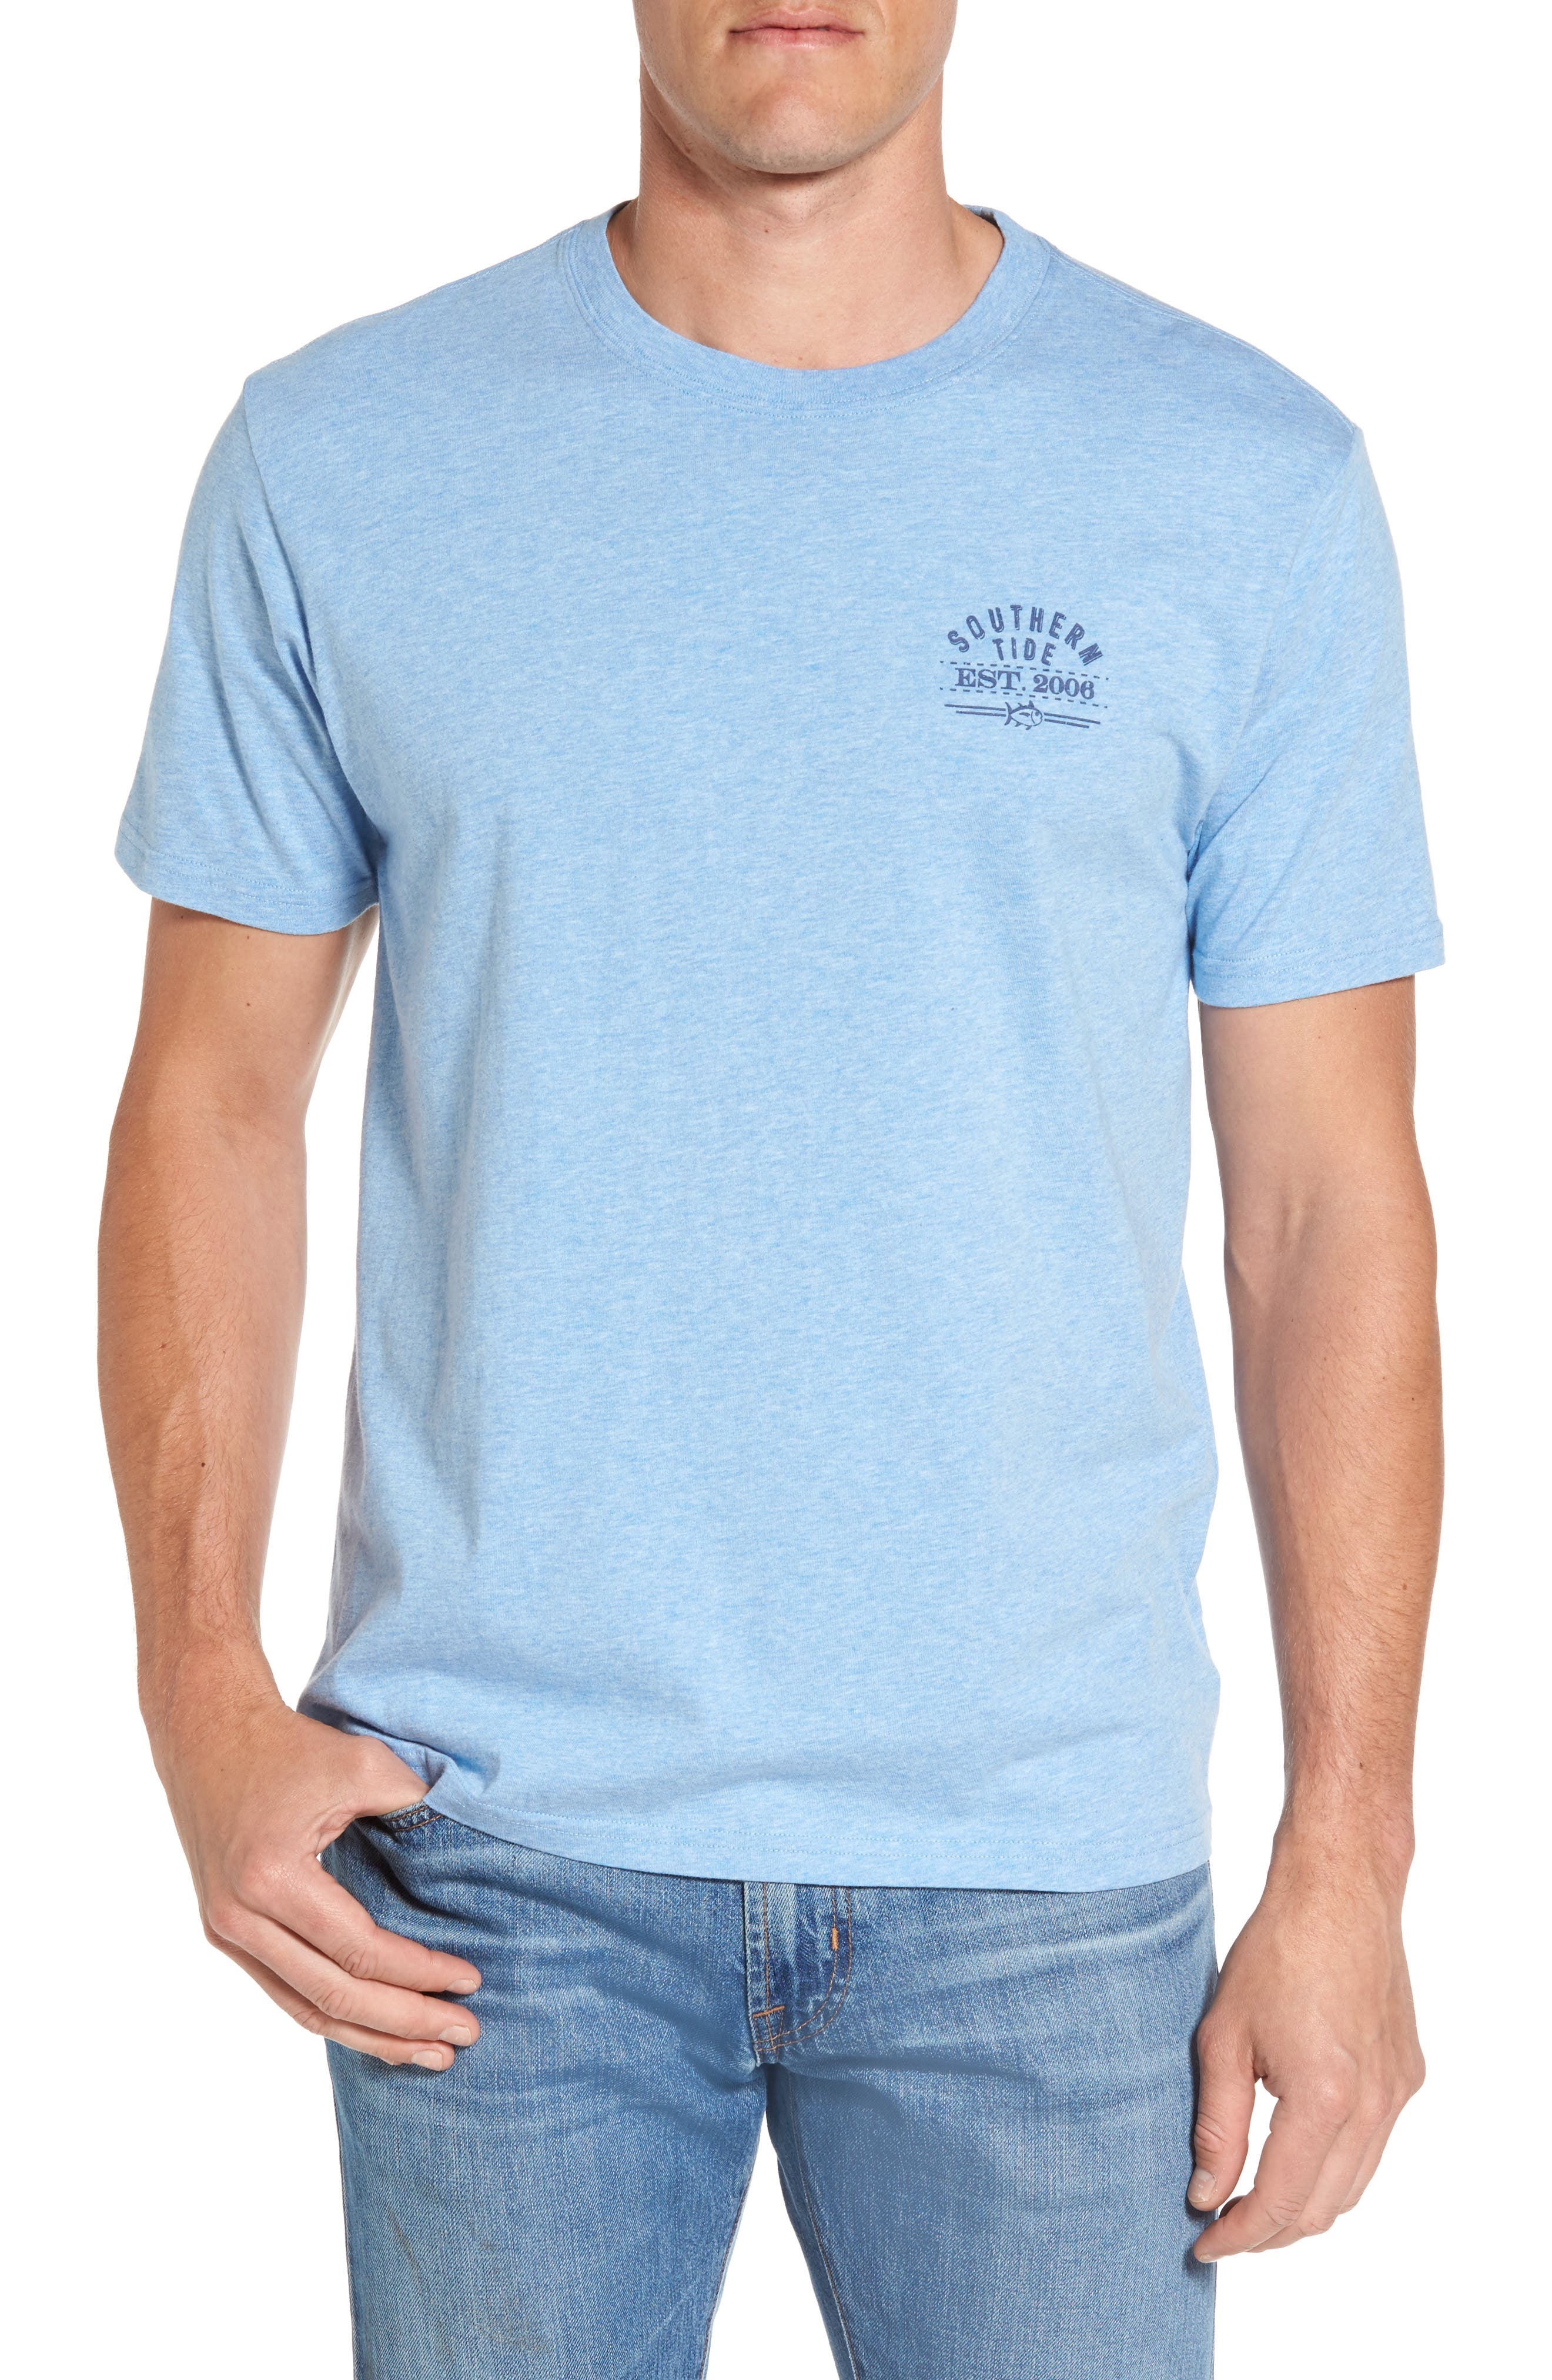 Alternate Image 2  - Southern Tide Bourbon Bottle Classic Fit Graphic T-Shirt